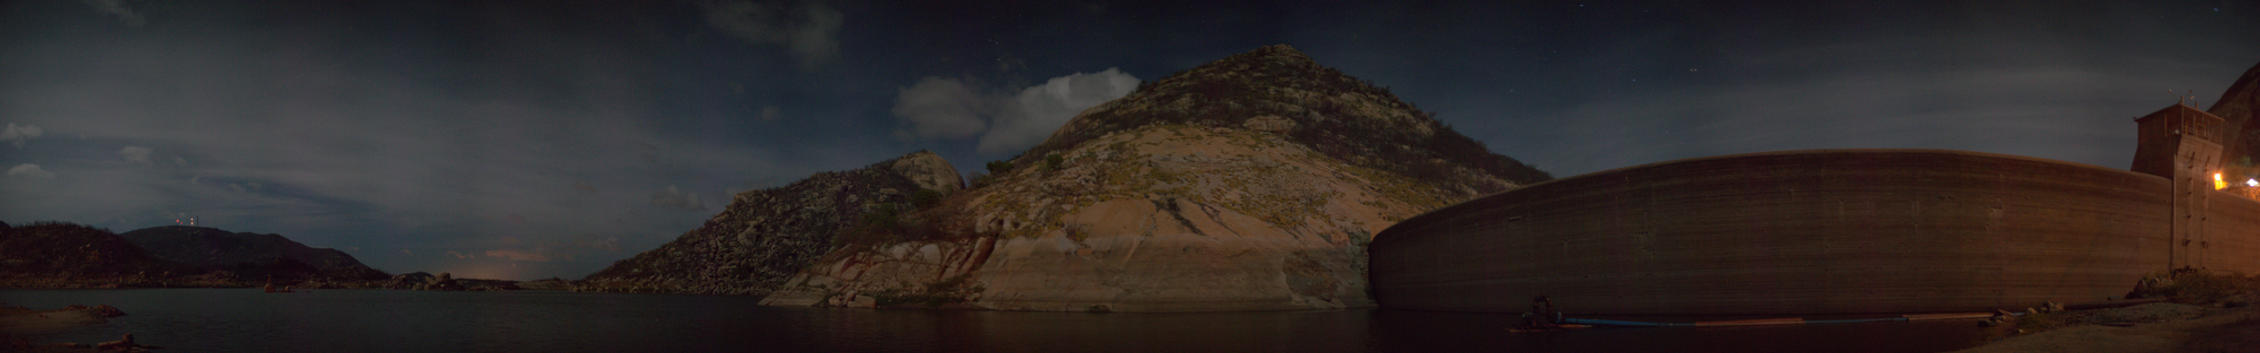 Gargalheira's Dam at night by YOWYO